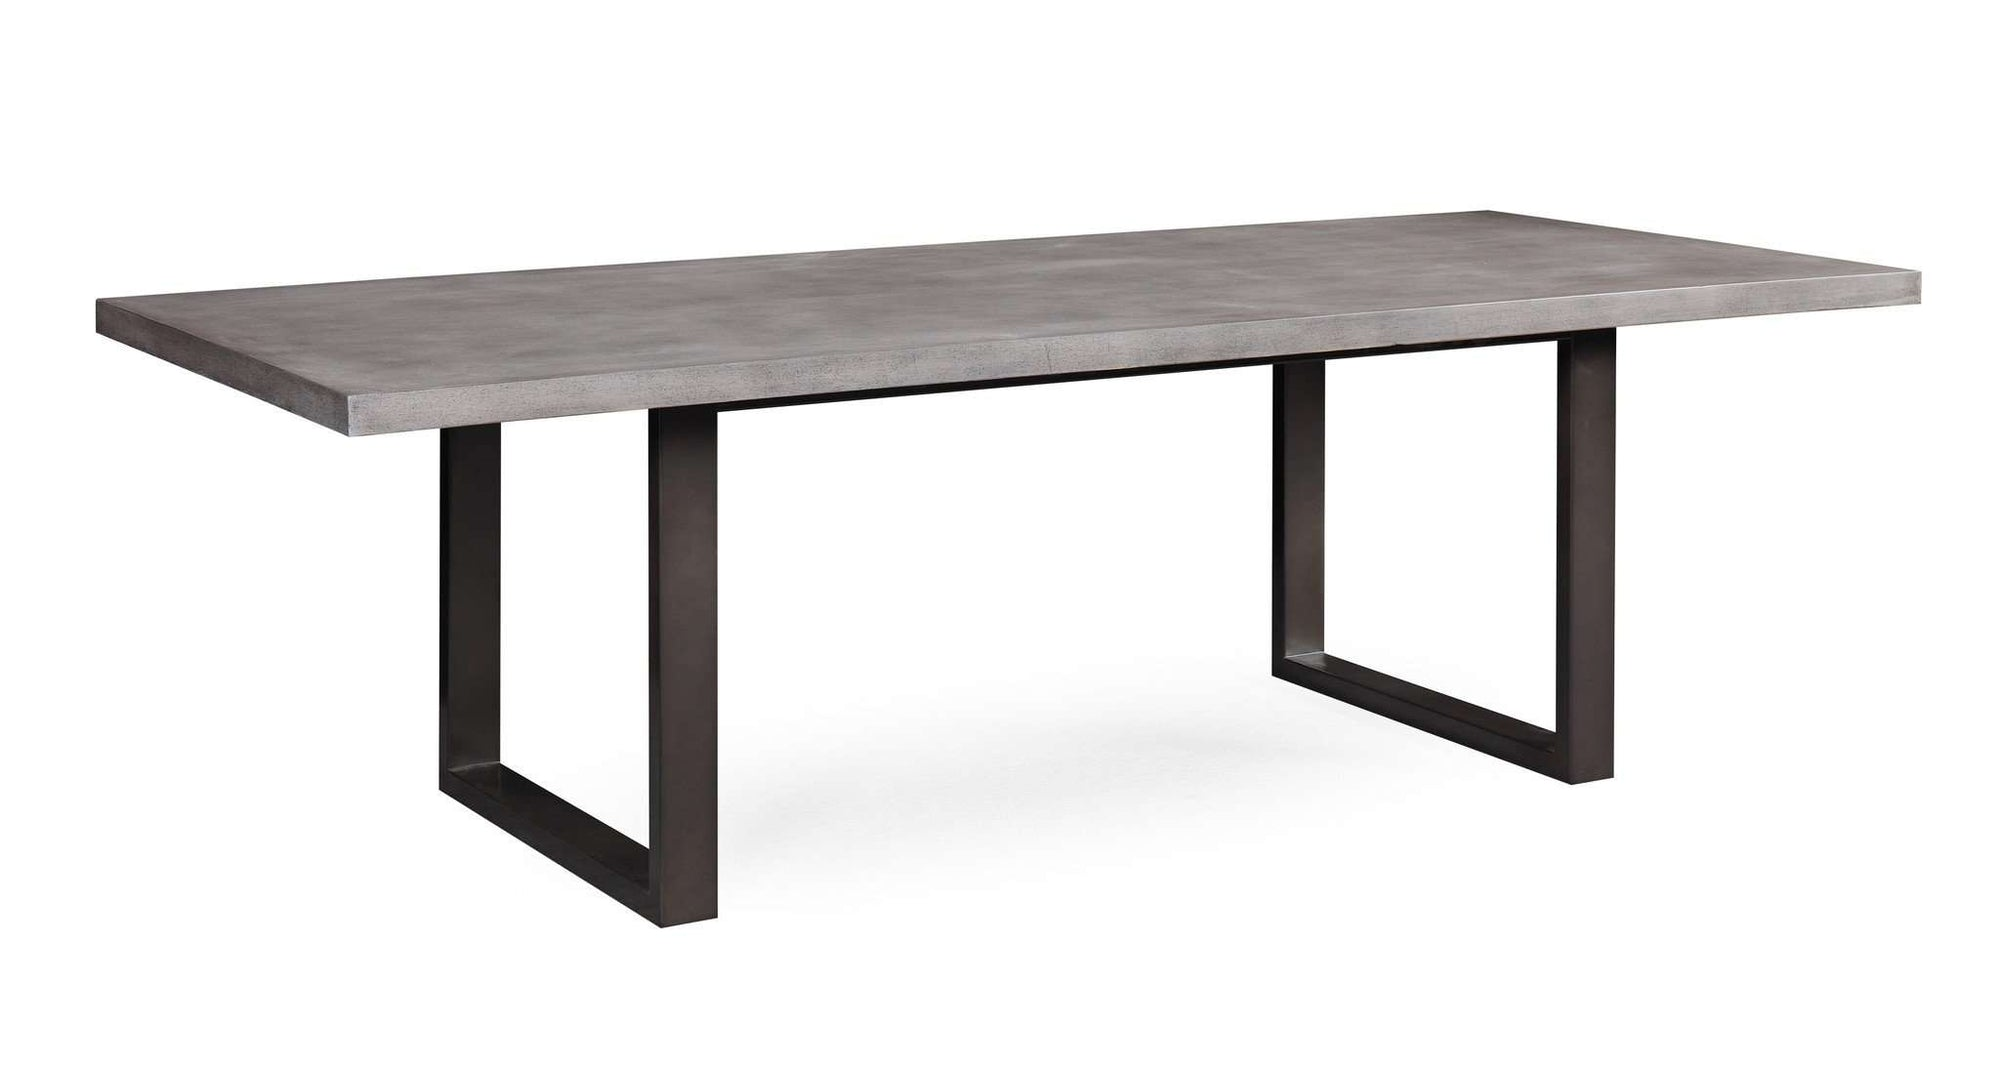 Tov-Edna Concrete Table-Table-MODTEMPO